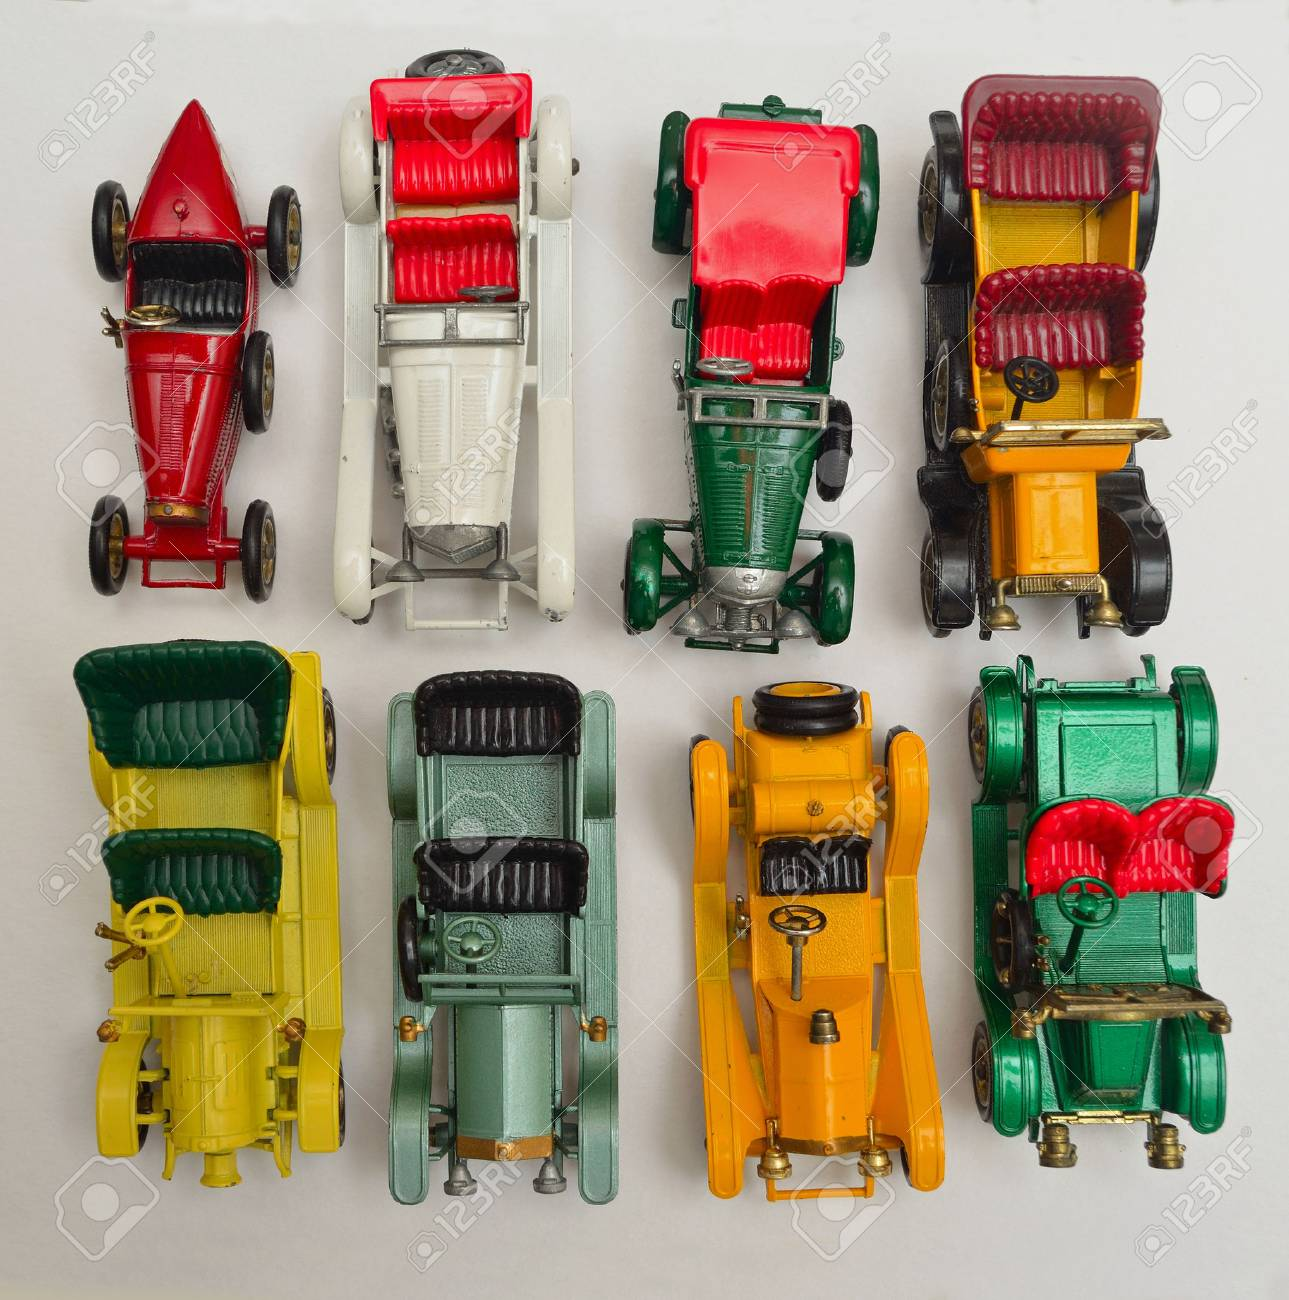 Eight Diecast Toy Vintage Cars Stock Photo - 60733662